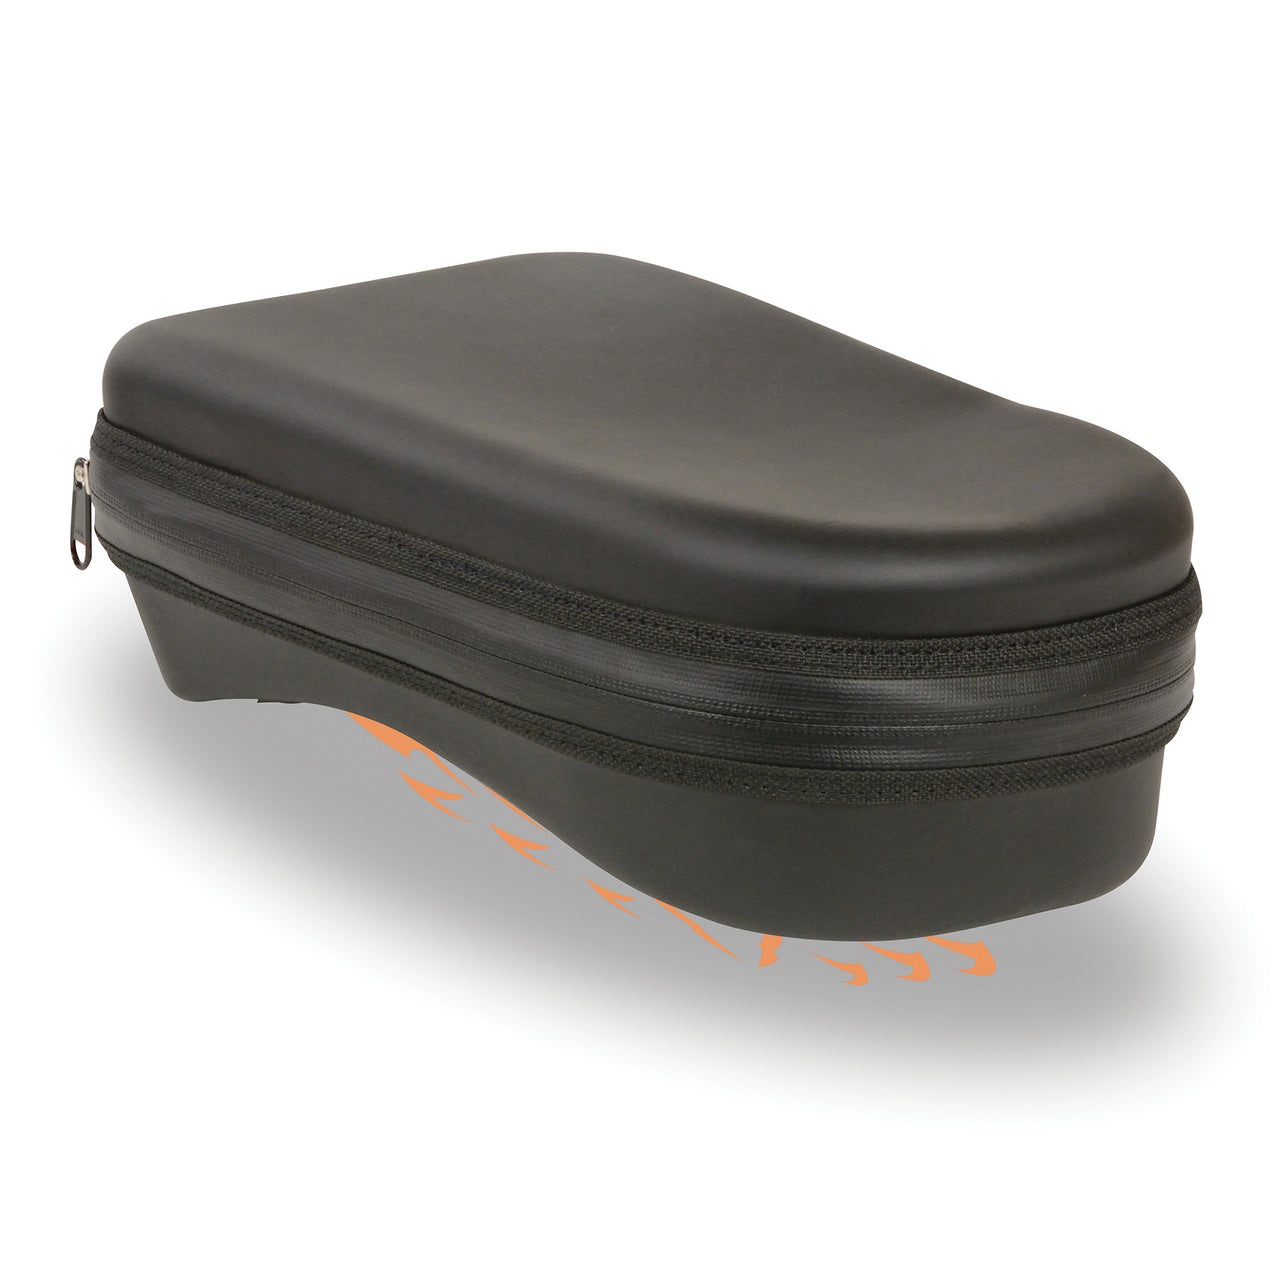 Small Waterproof Suction Cup Storage Pouch - HighwayLeather